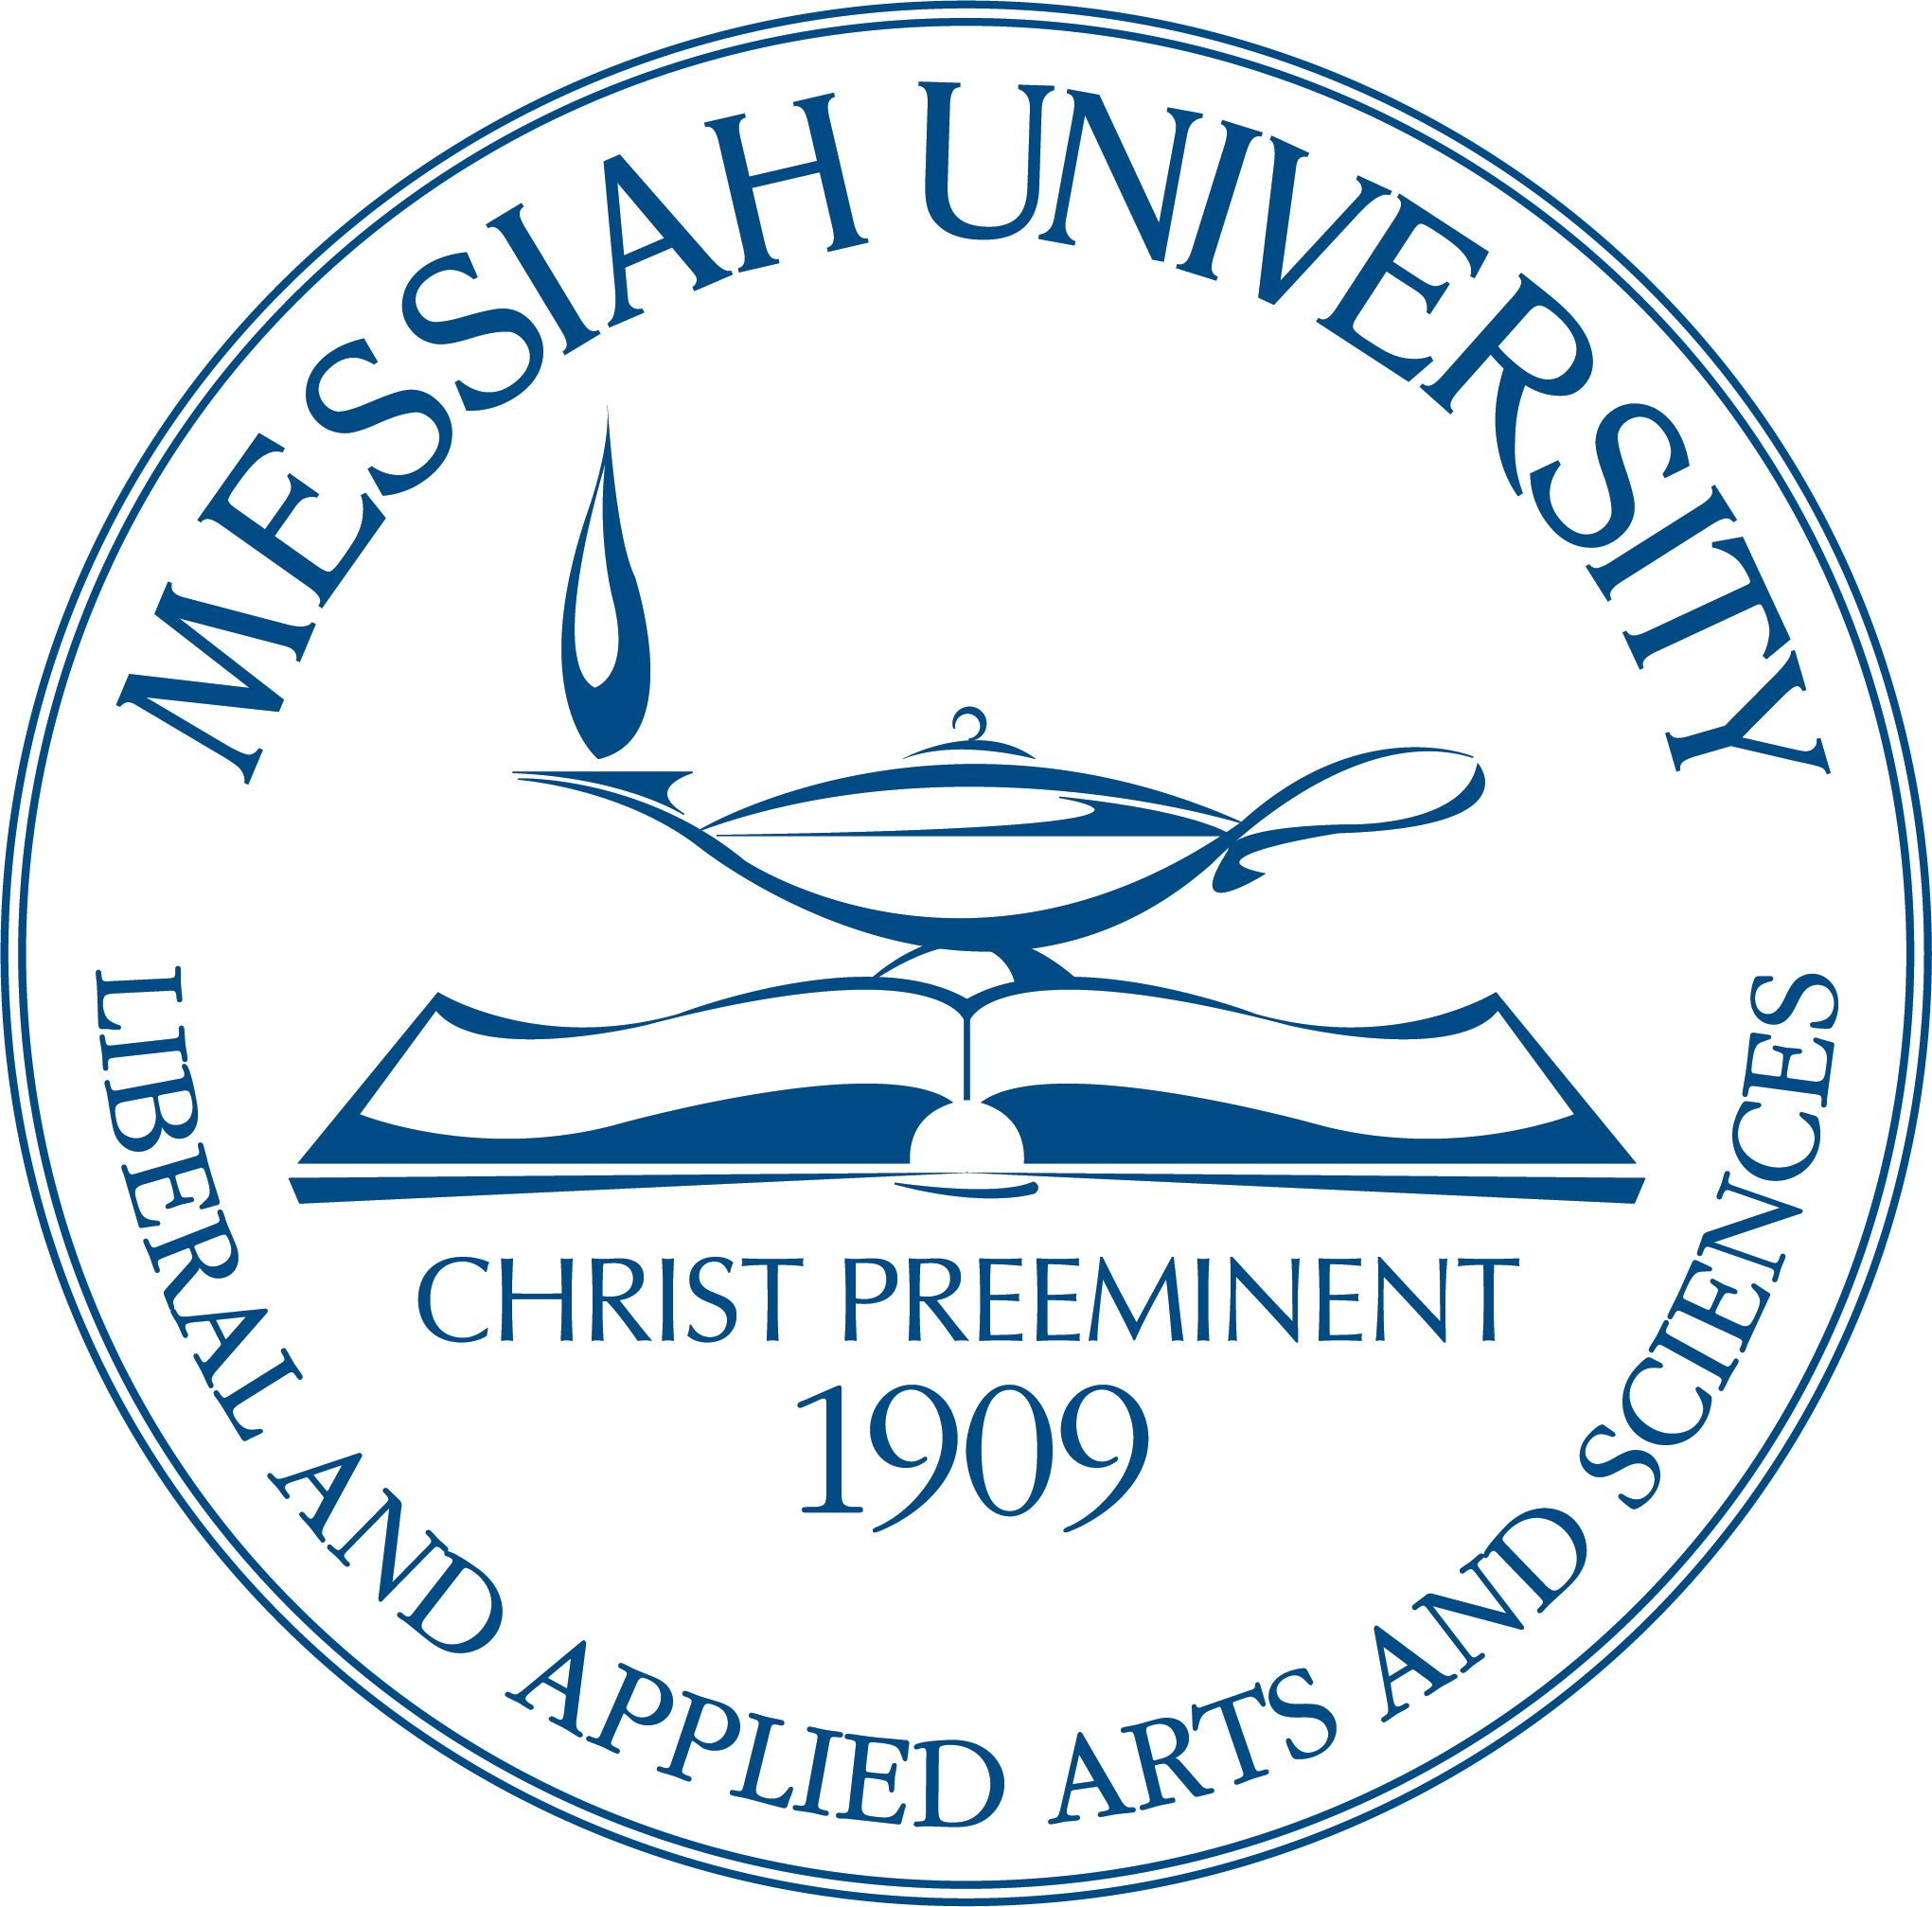 Messiah University Liberal And Applied Arts And Sciences Christ Preeminent 1909 Messiah College Trademark Registration